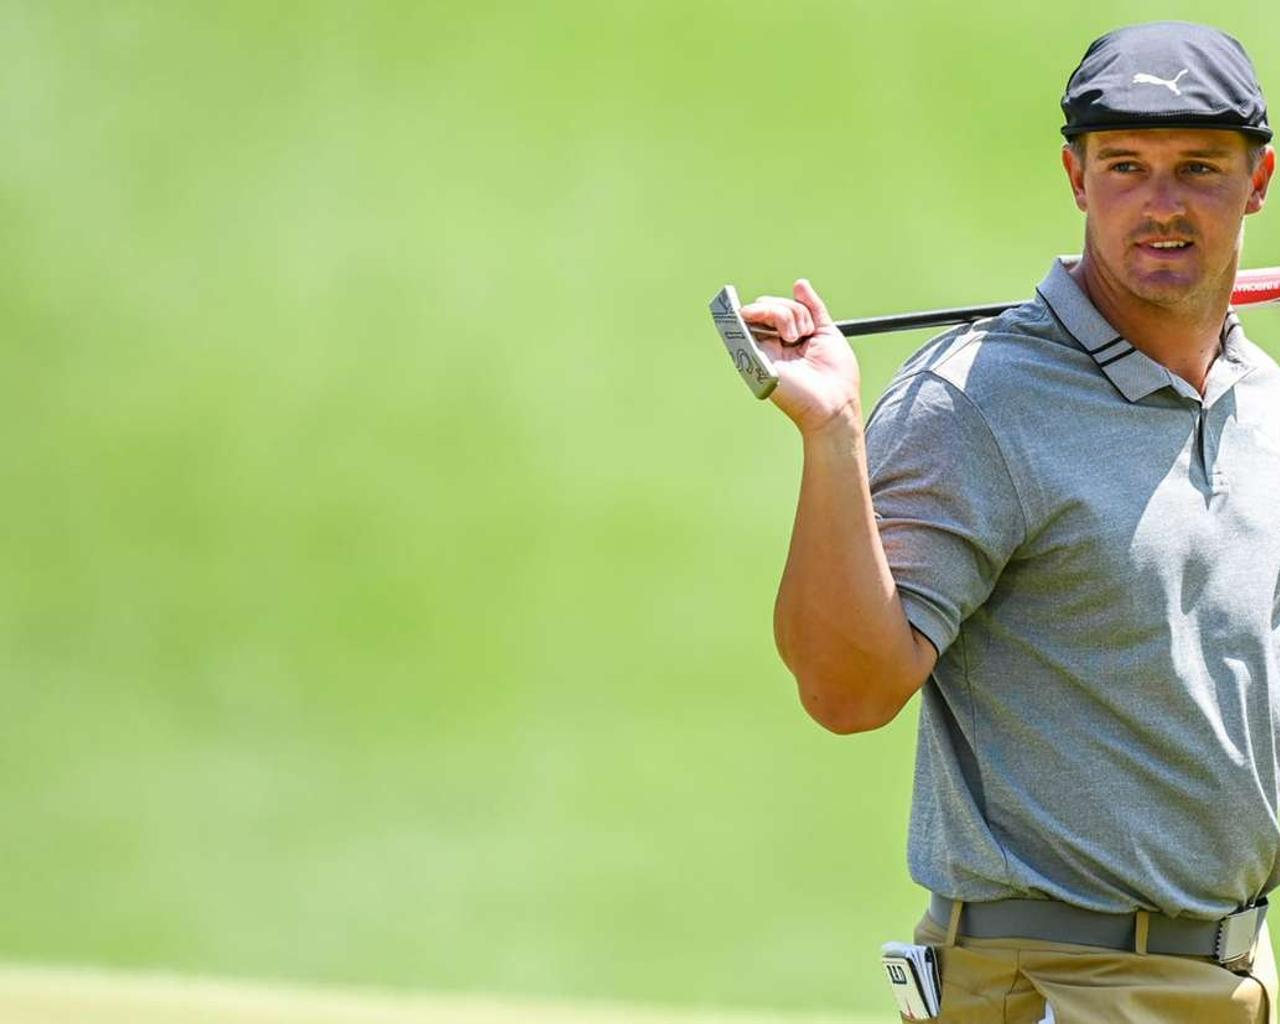 Bryson DeChambeau is looking for new lines at Augusta National with his new toy in hand.